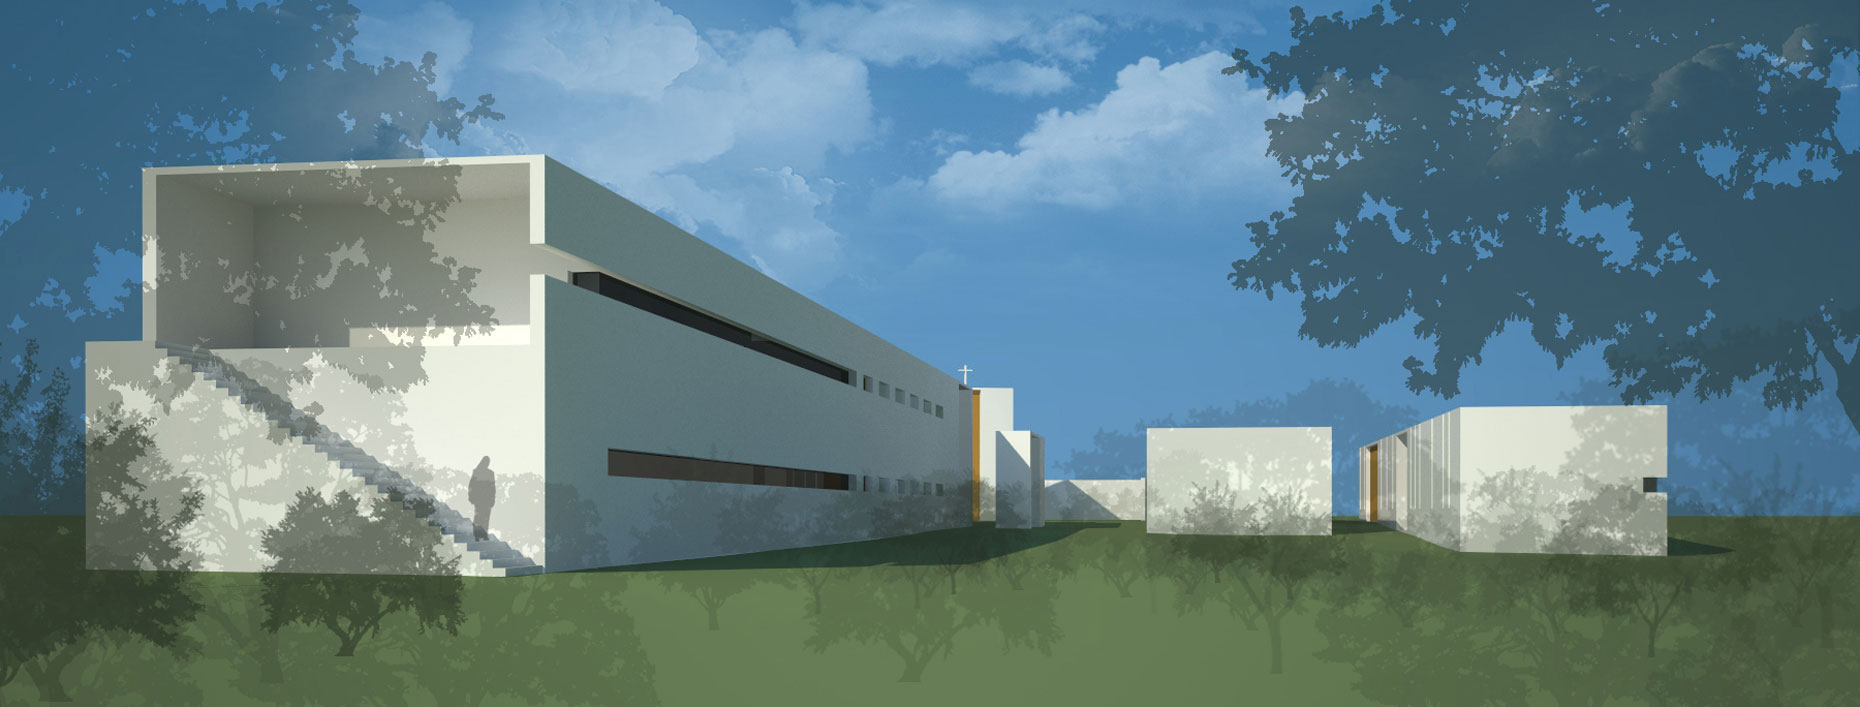 david-hu-architect-cultural-institutional_ICM-Sisters-Texas_09.jpg